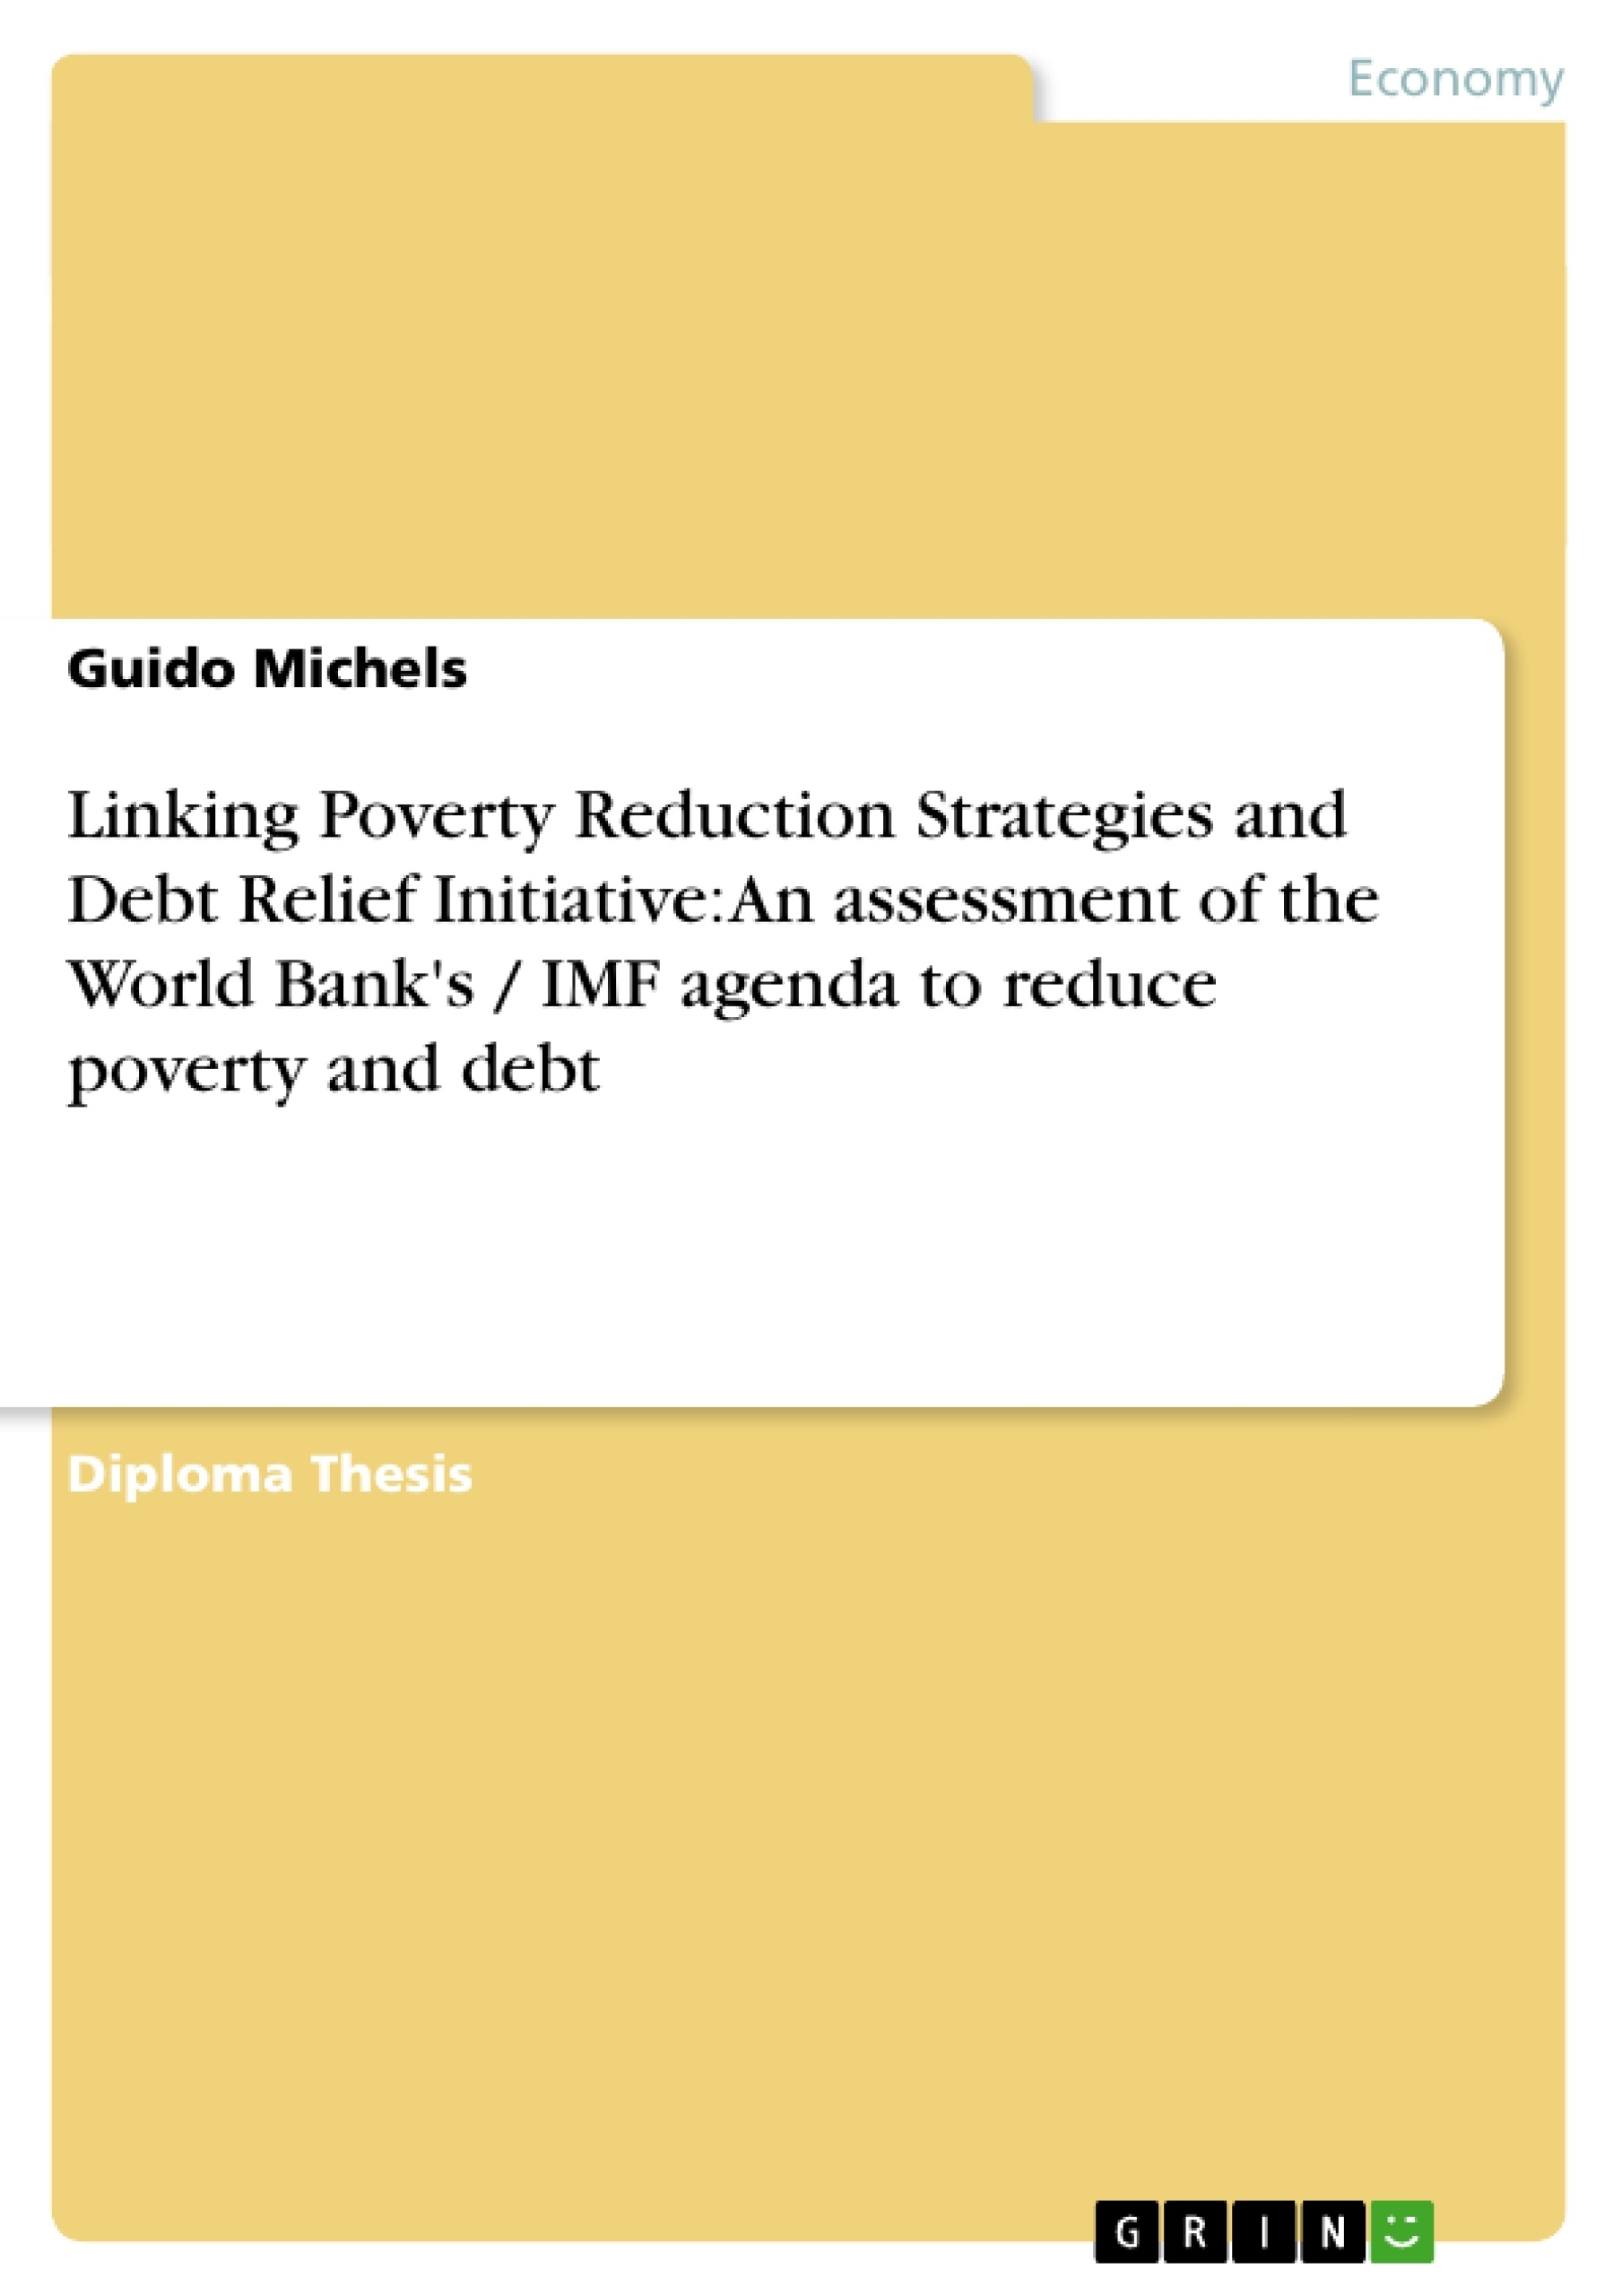 Title: Linking Poverty Reduction Strategies and Debt Relief Initiative: An assessment of the World Bank's / IMF agenda to reduce poverty and debt